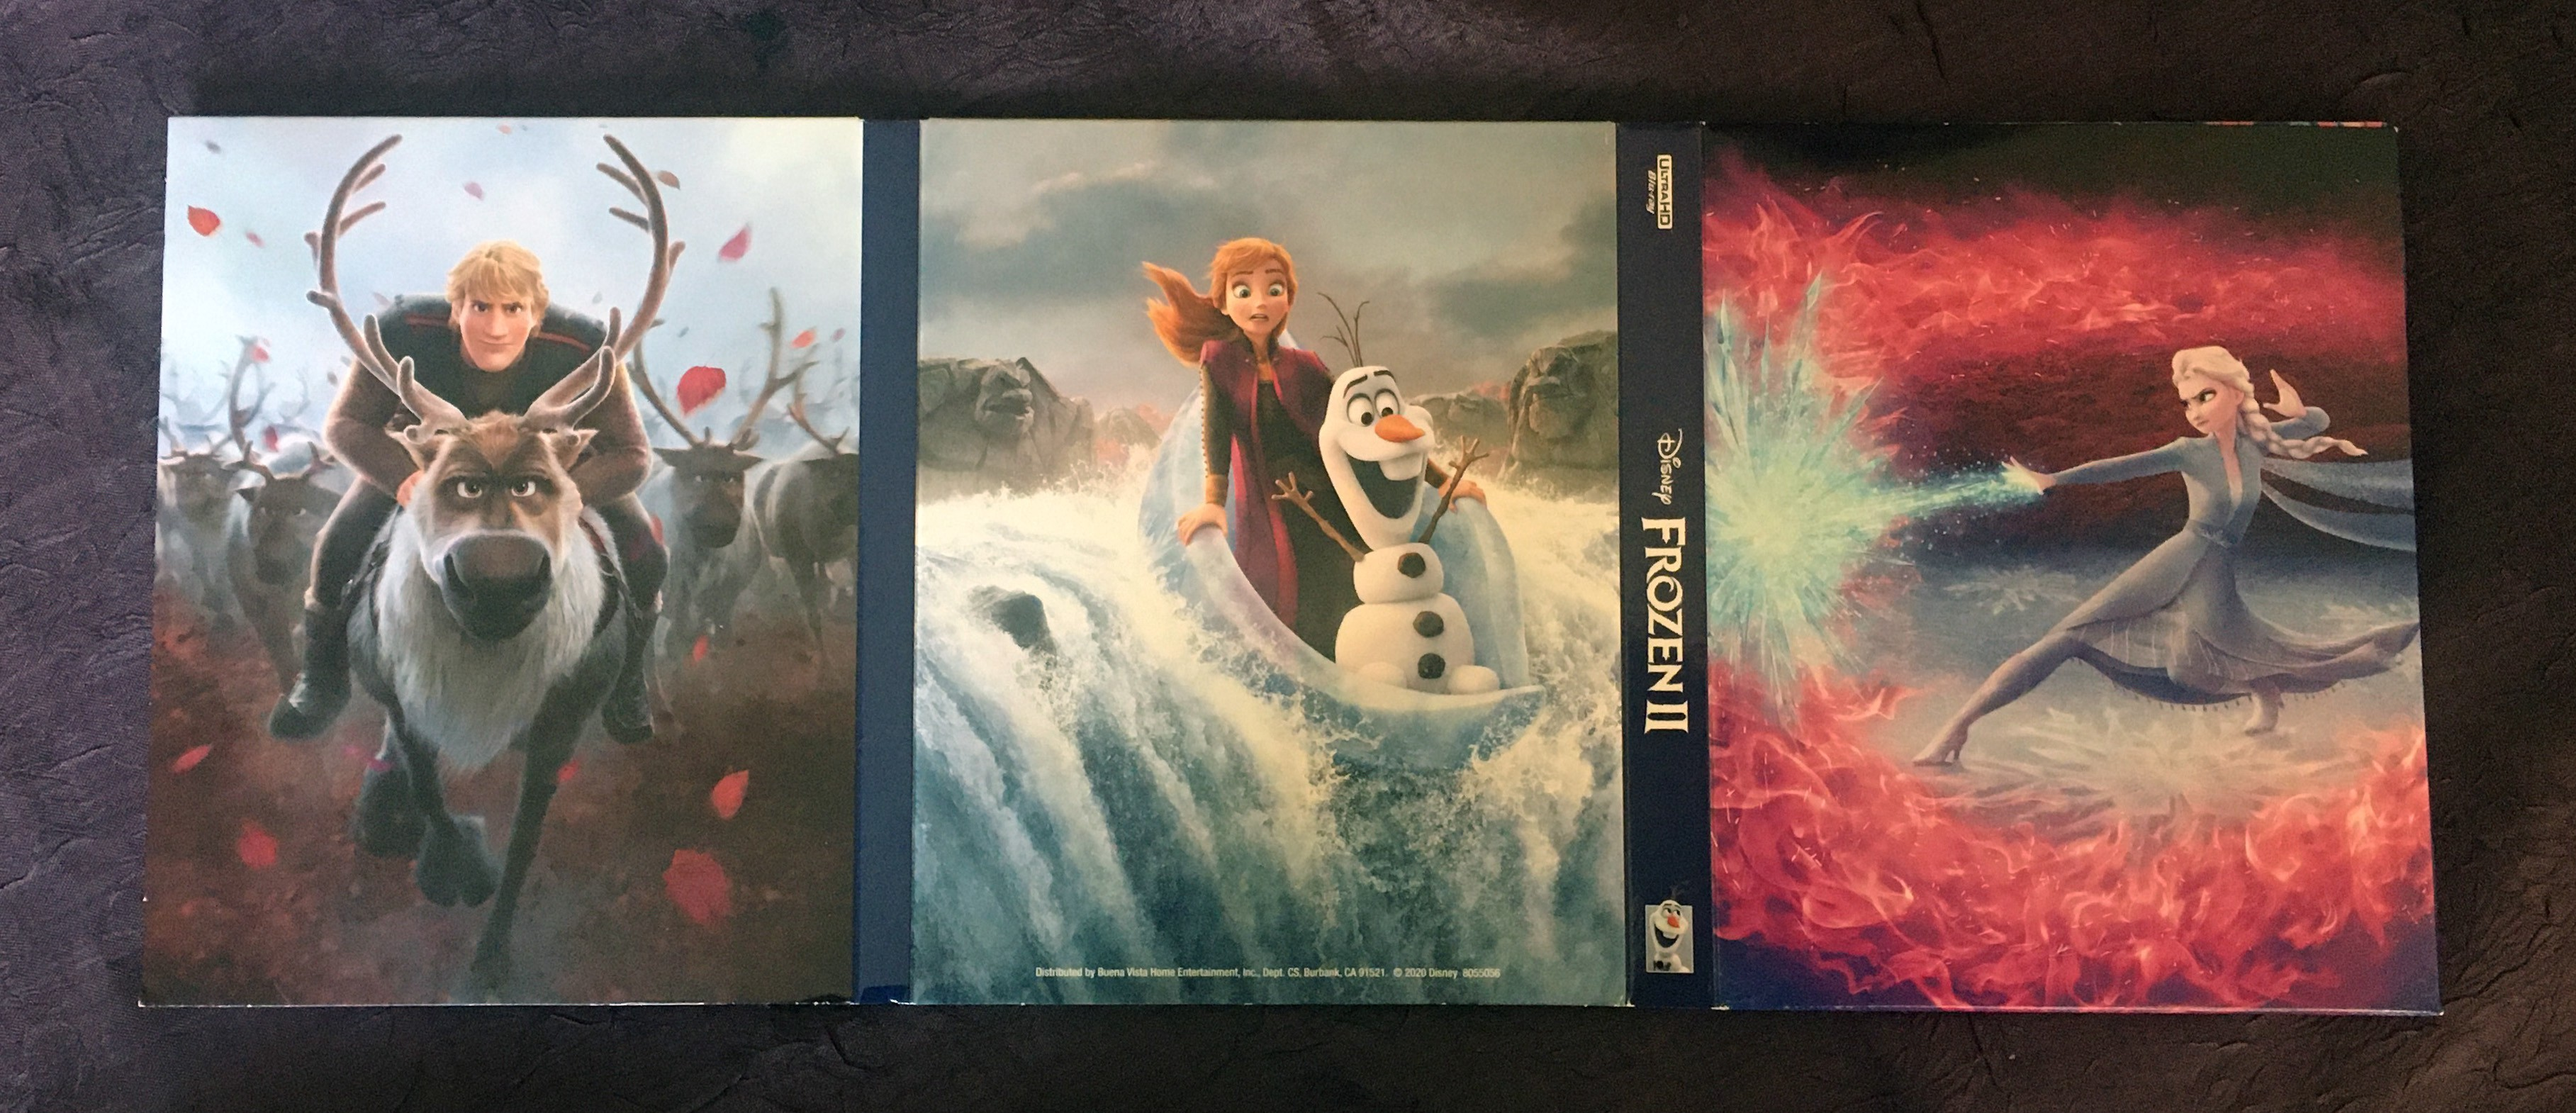 Frozen Ii 4k Uhd Blu Frozen 2 Disney Movies